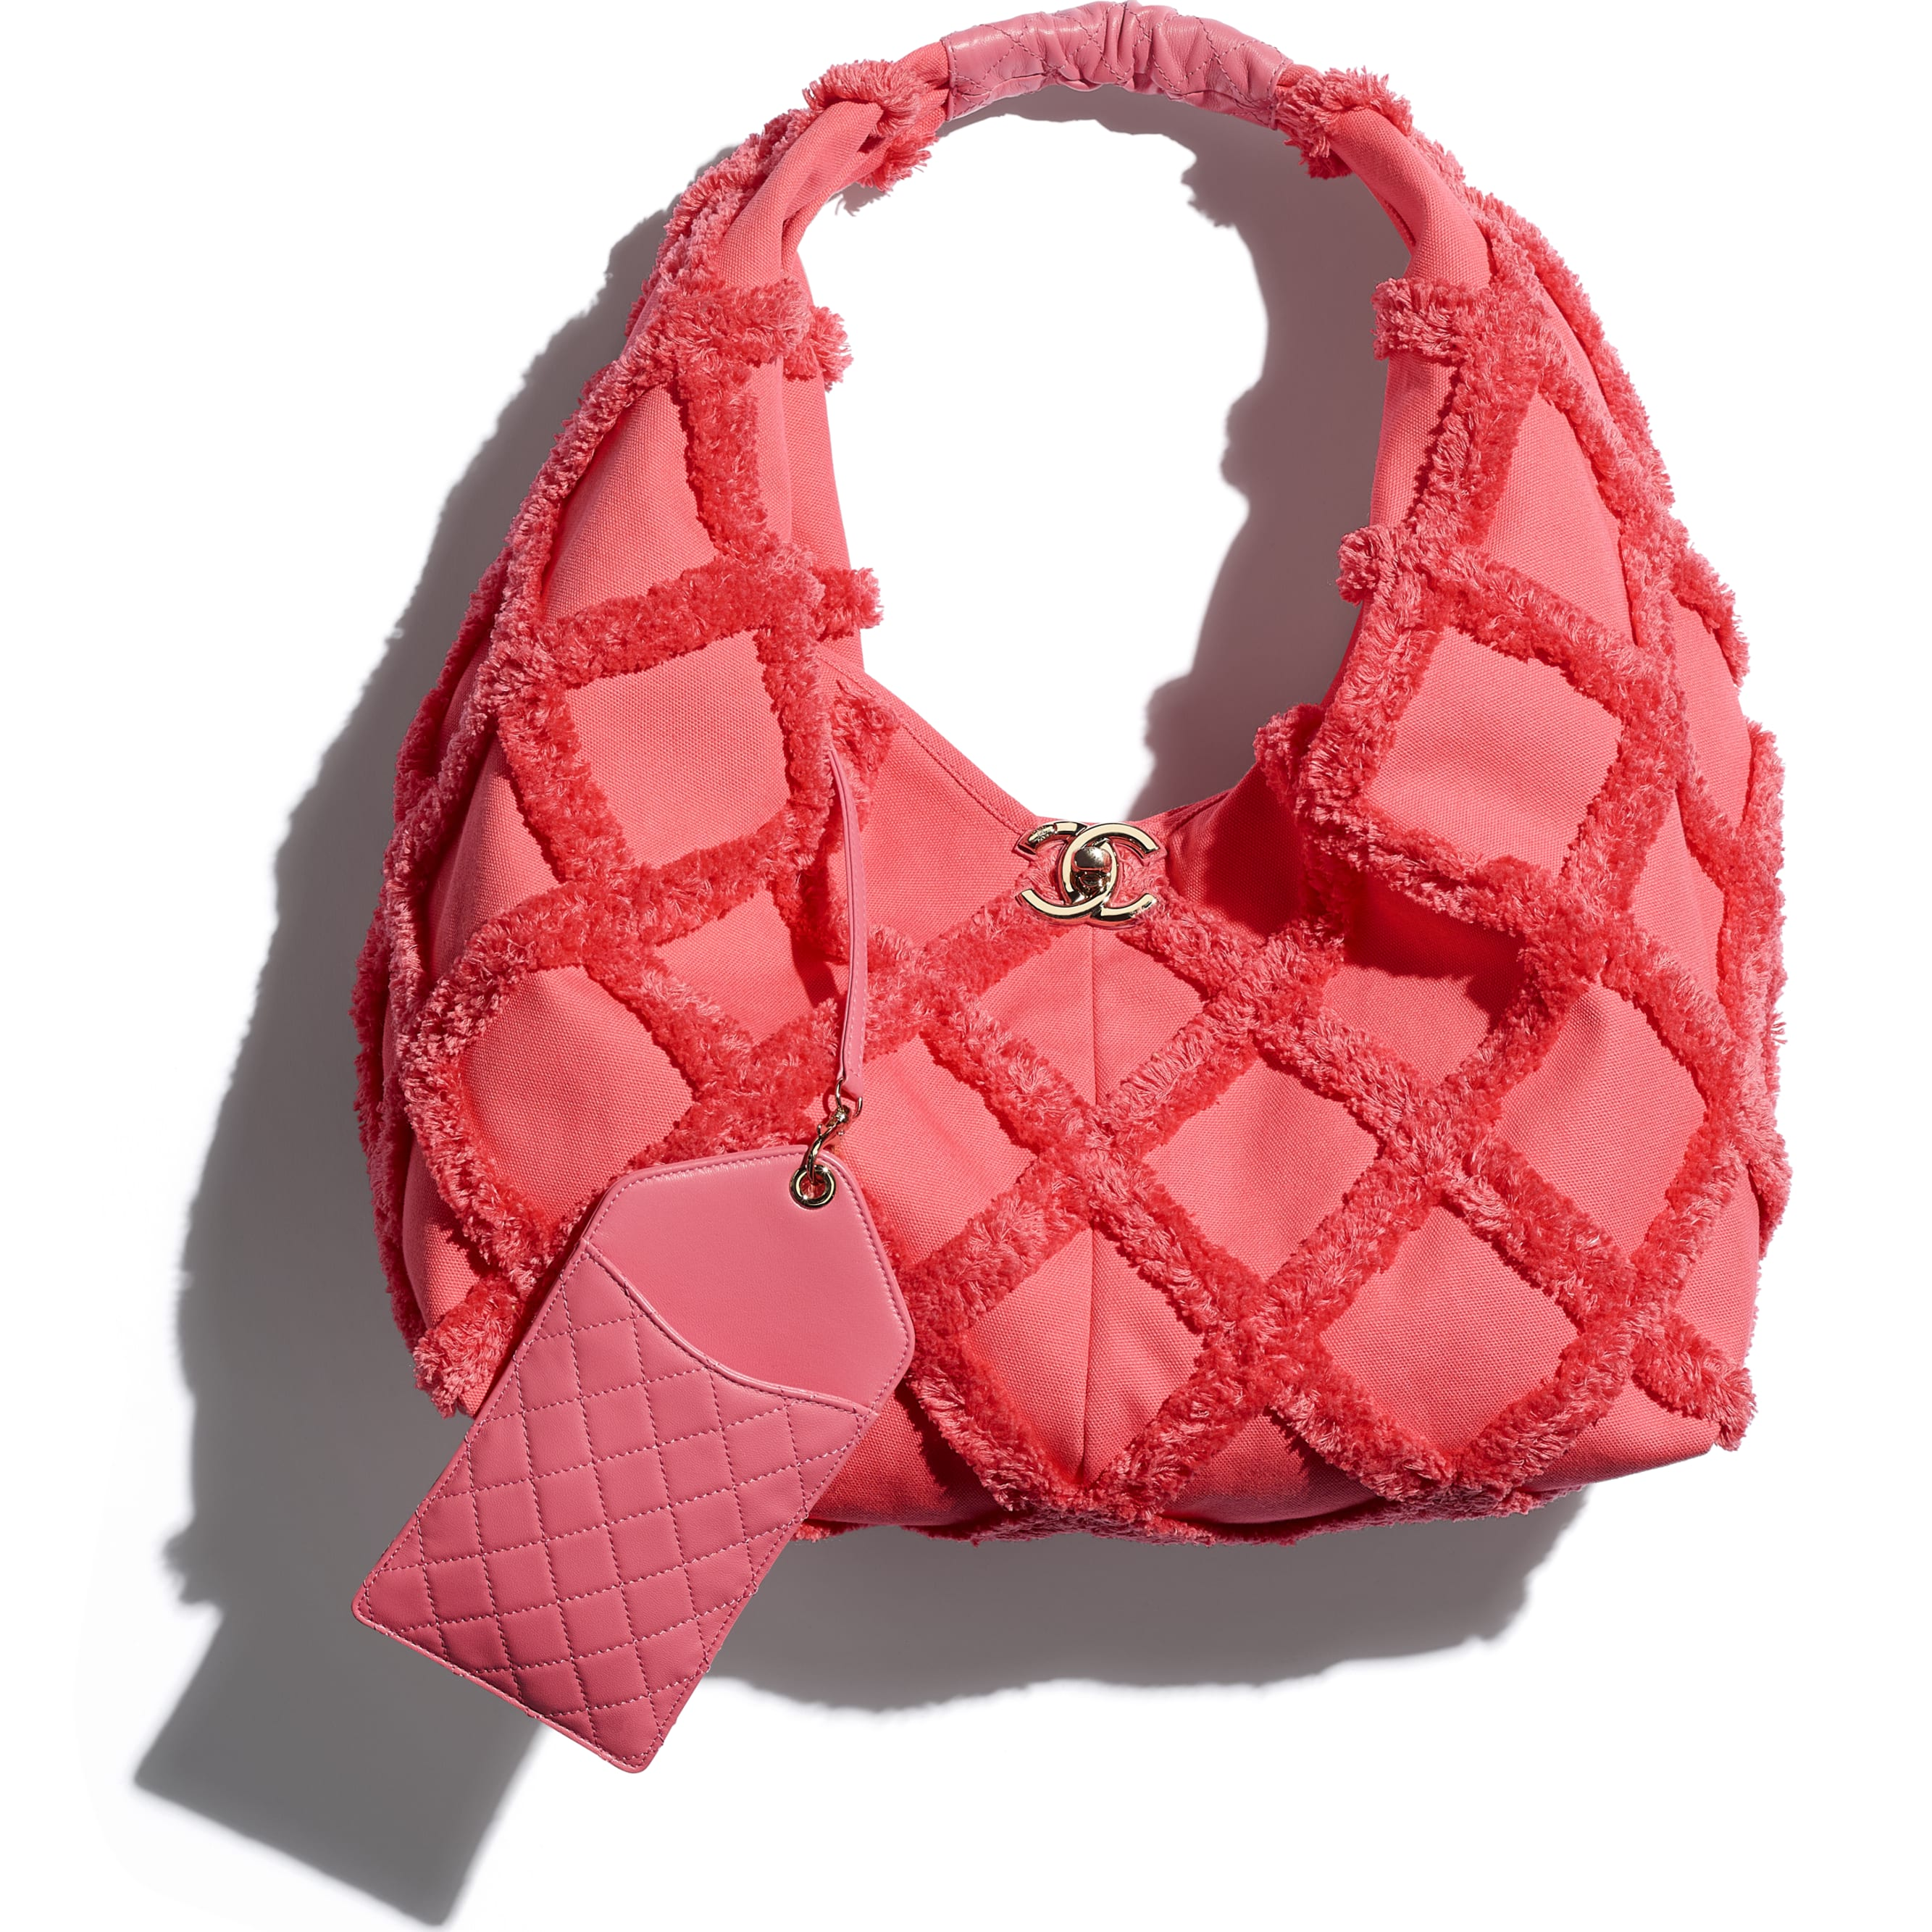 Large Hobo Bag - Coral - Cotton Canvas, Calfskin & Gold-Tone Metal - CHANEL - Extra view - see standard sized version